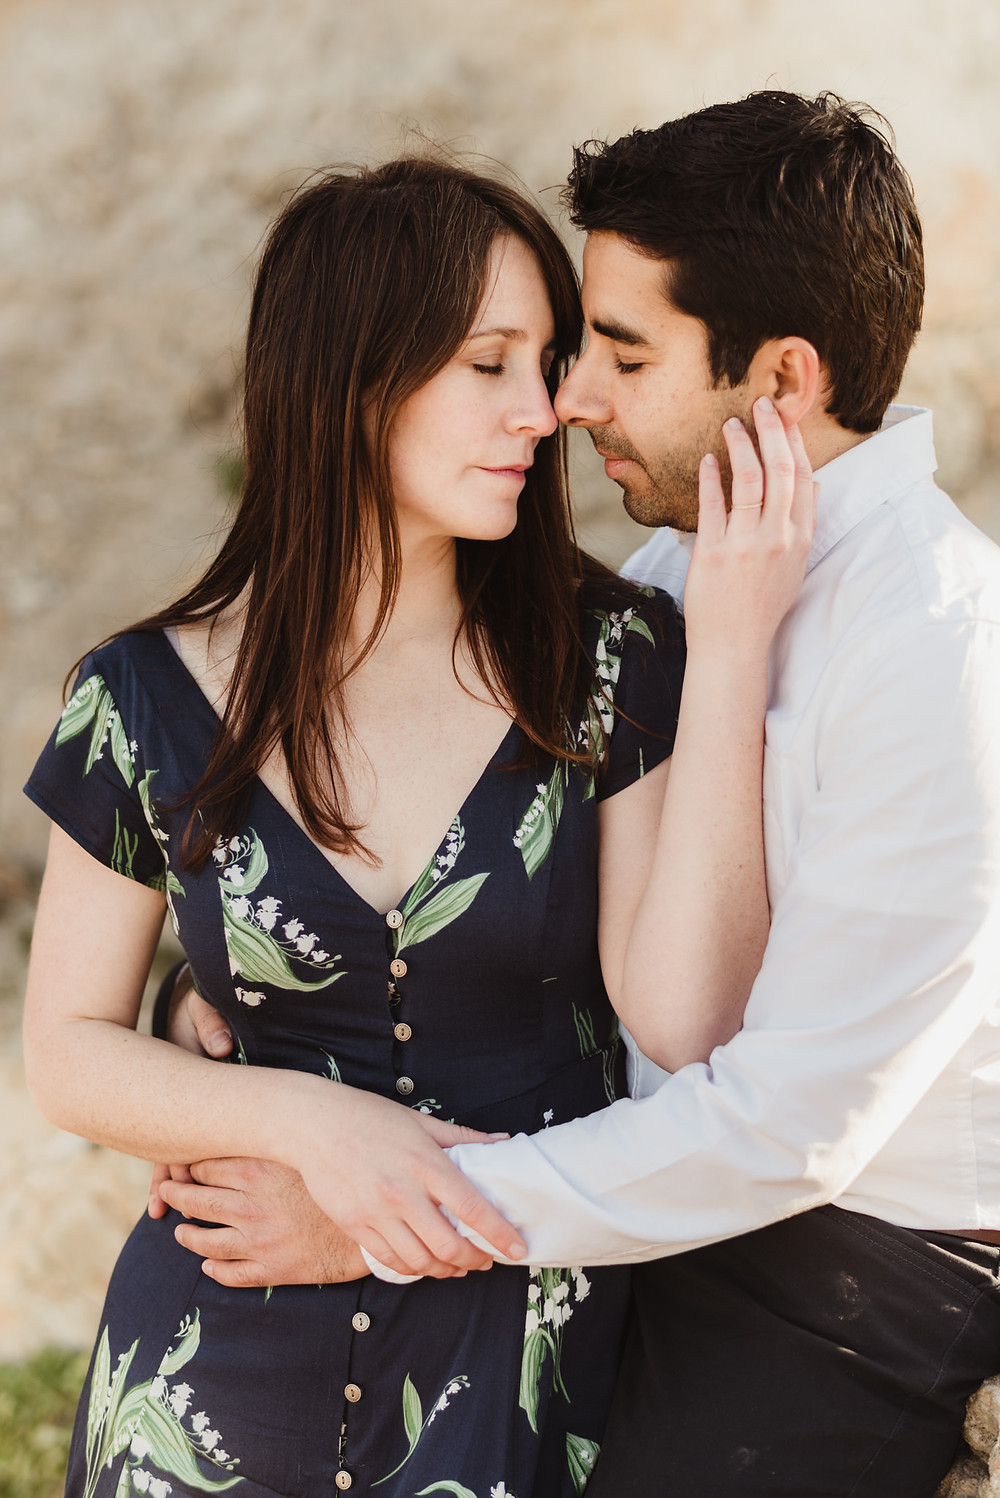 Romantic Sunrise Engagement Session at Sutro Baths, California